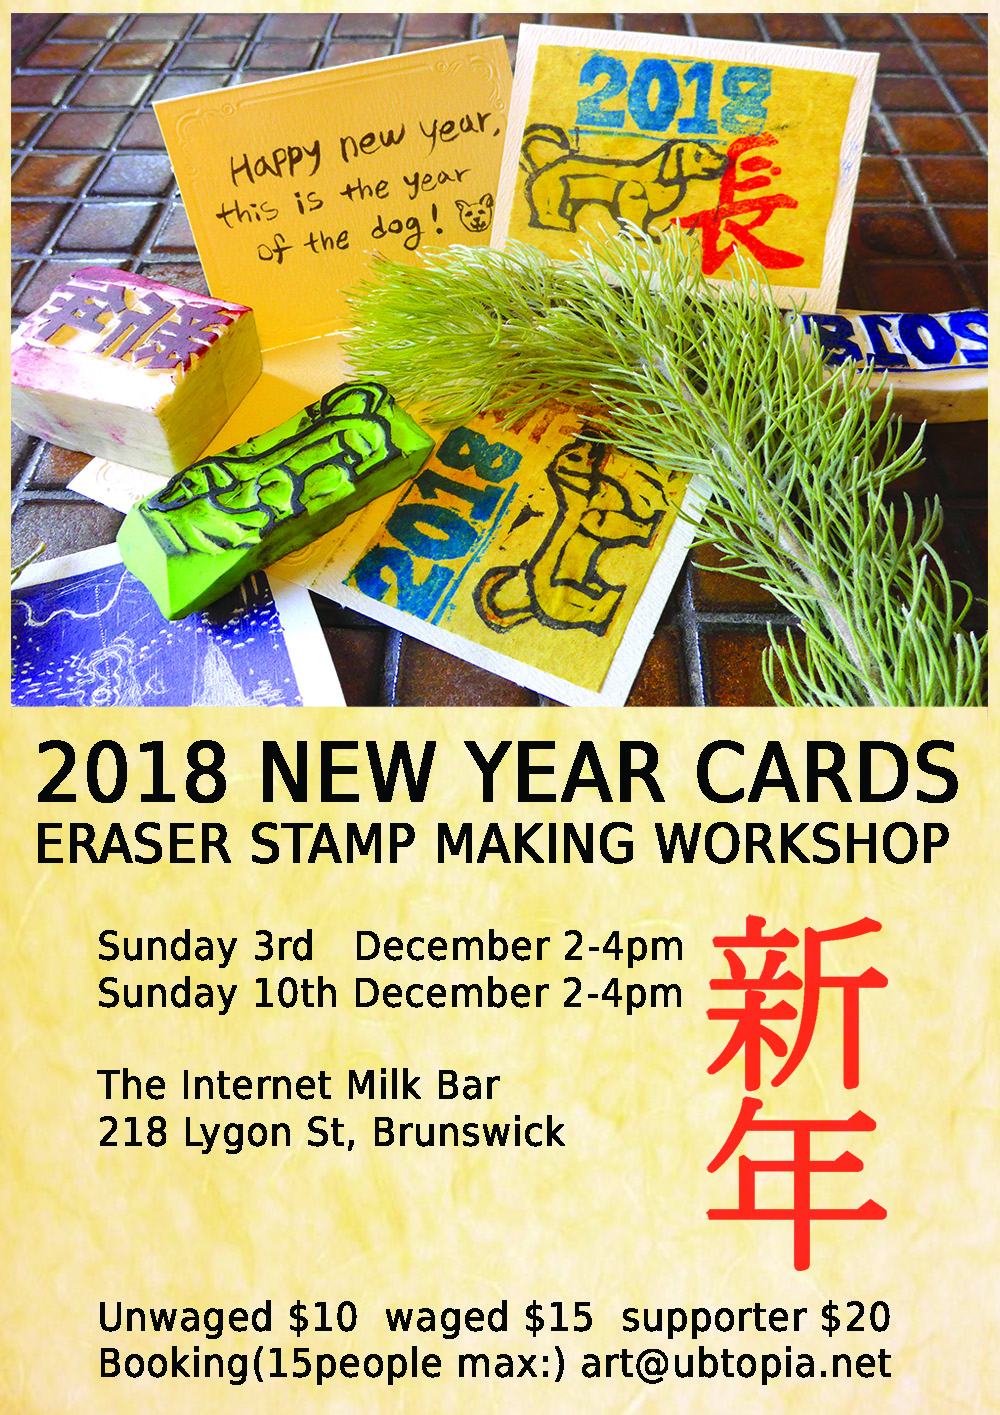 ERASER STAMP MAKING WORKSHOP